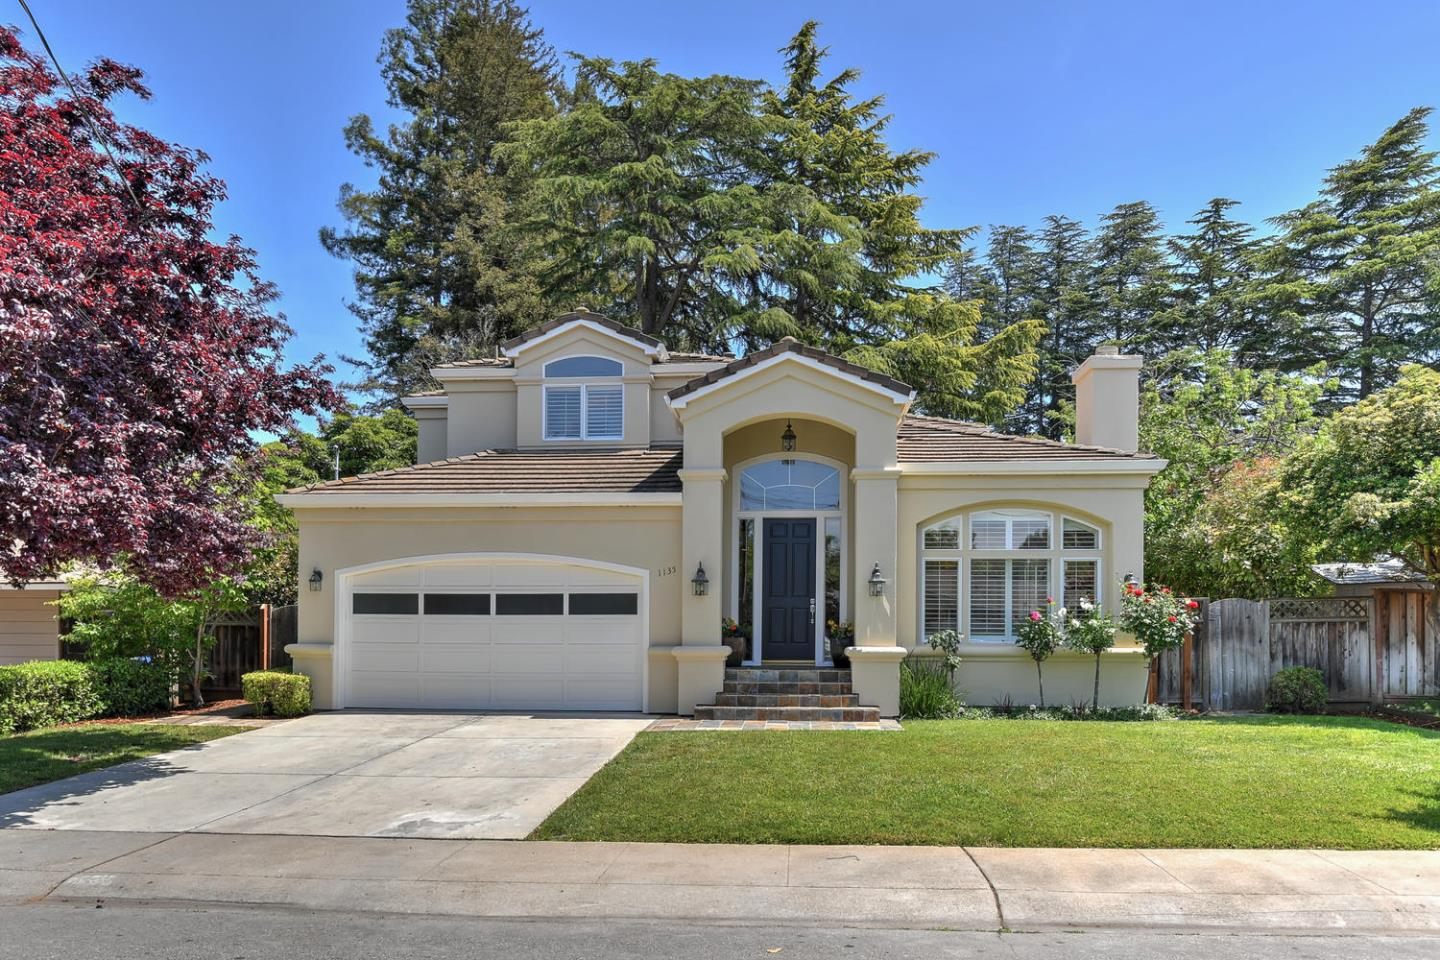 Detail Gallery Image 1 of 1 For 1135 Blackfield Way, Mountain View, CA 94040 - 5 Beds | 3/1 Baths